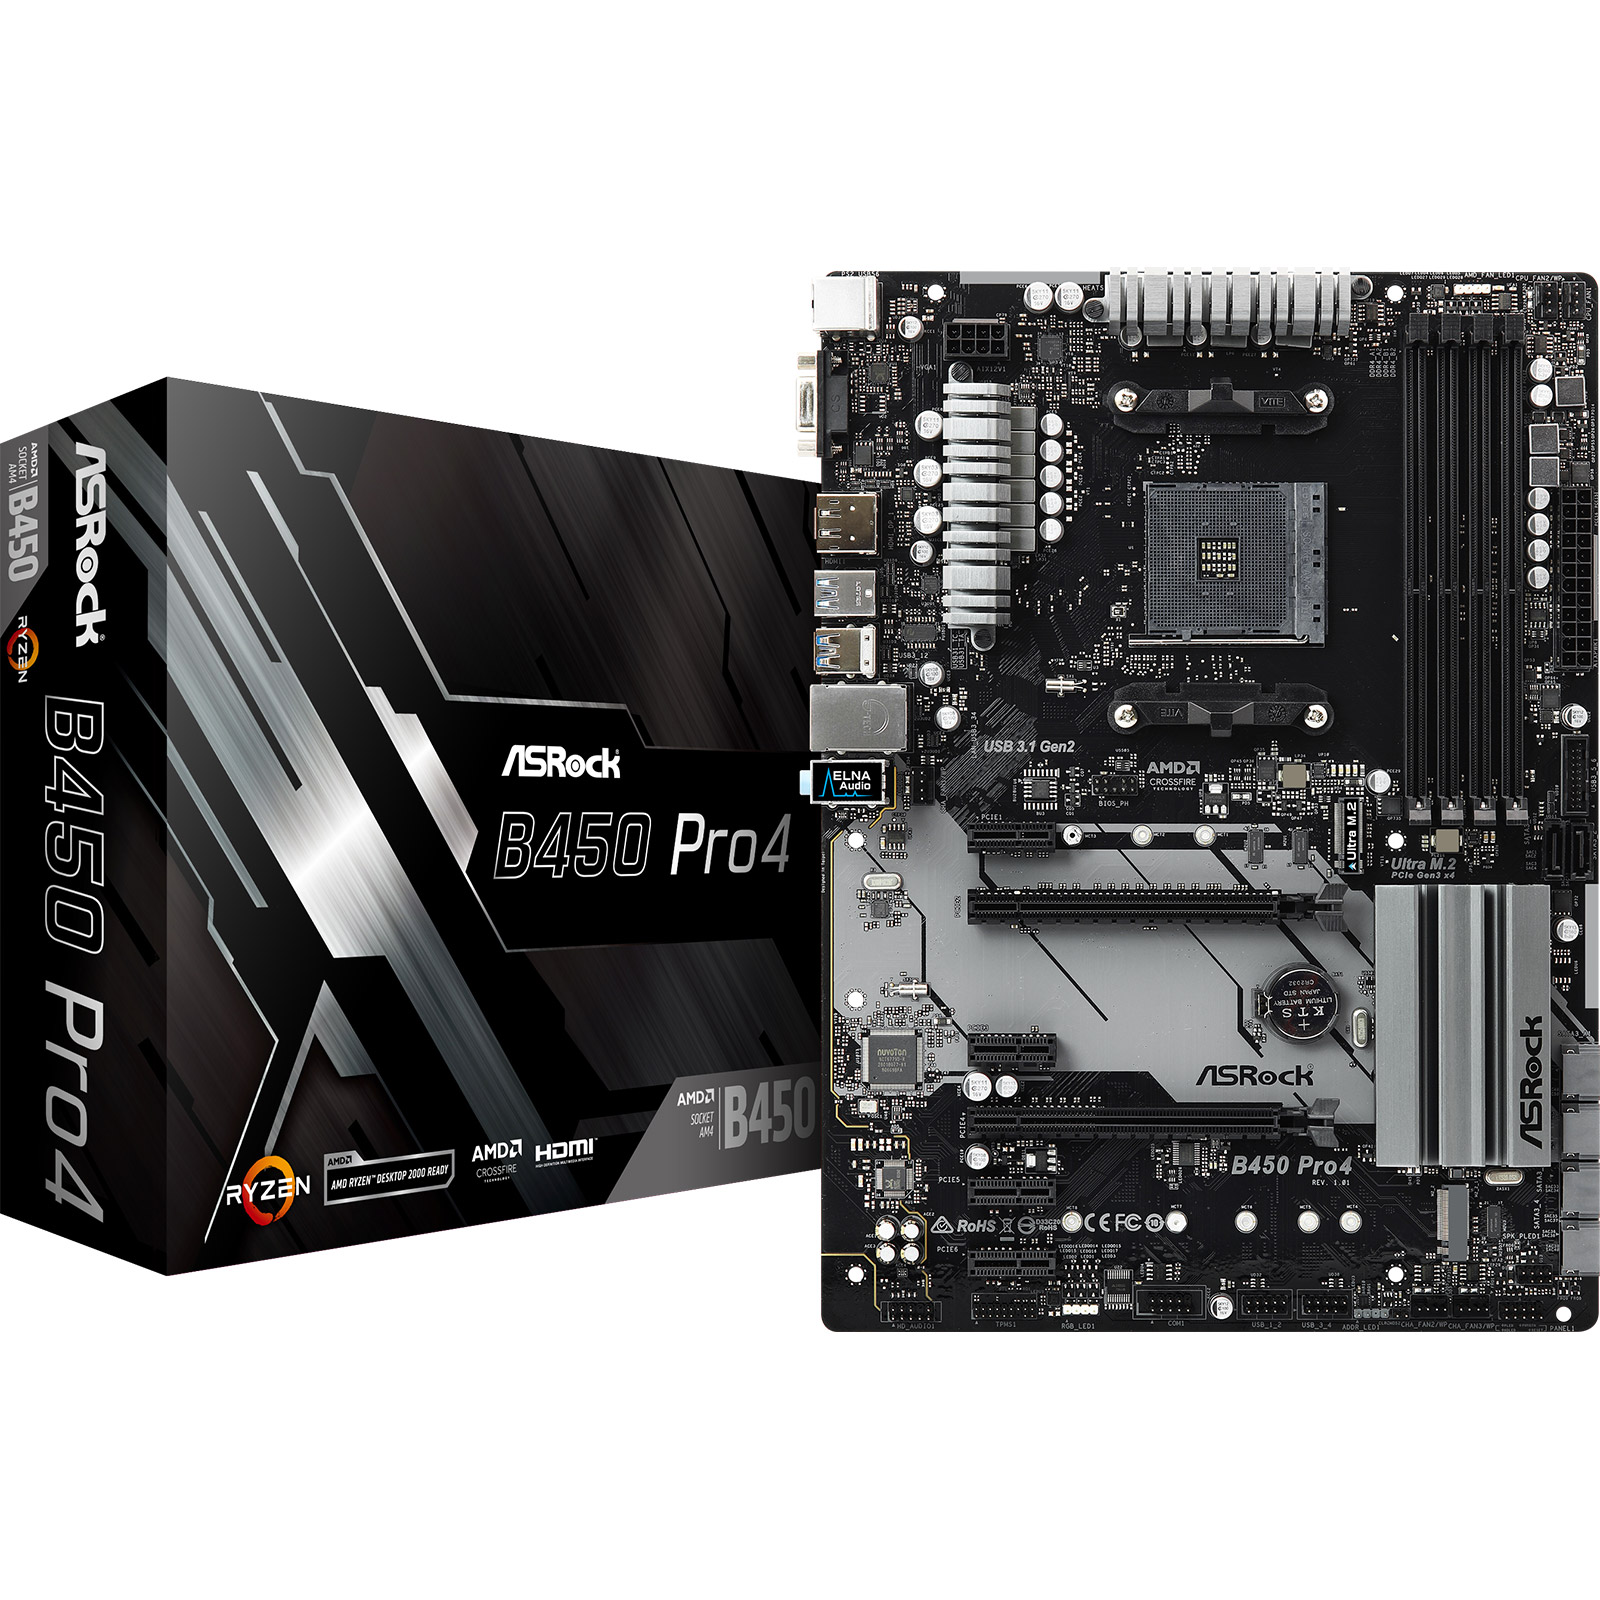 Carte mère ASRock B450-Pro 4 Carte mère ATX Socket AM4 AMD B450 - 4x DDR4 - SATA 6Gb/s + 2x M.2 - USB 3.0 - 1x PCI-Express 3.0 16x